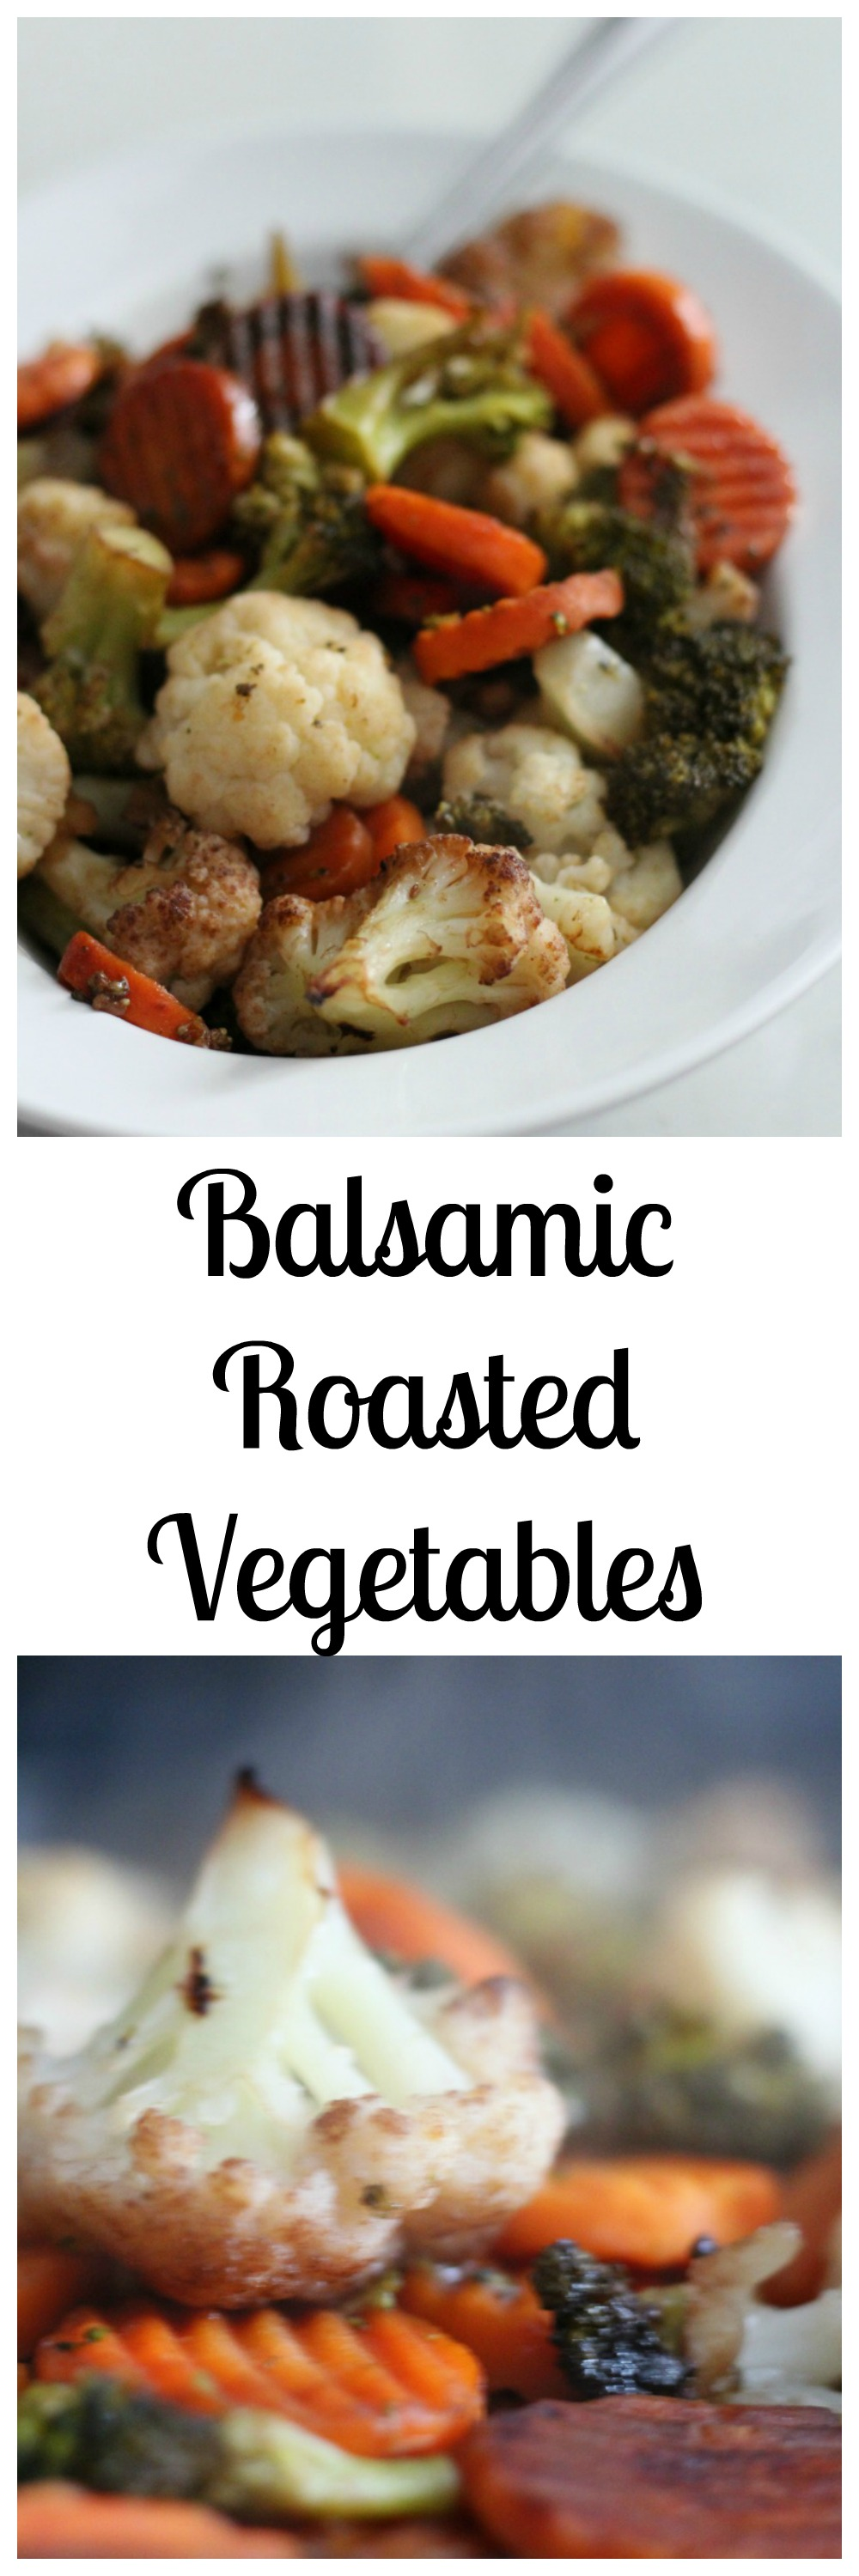 Balsamic Roasted Vegetables in bowl